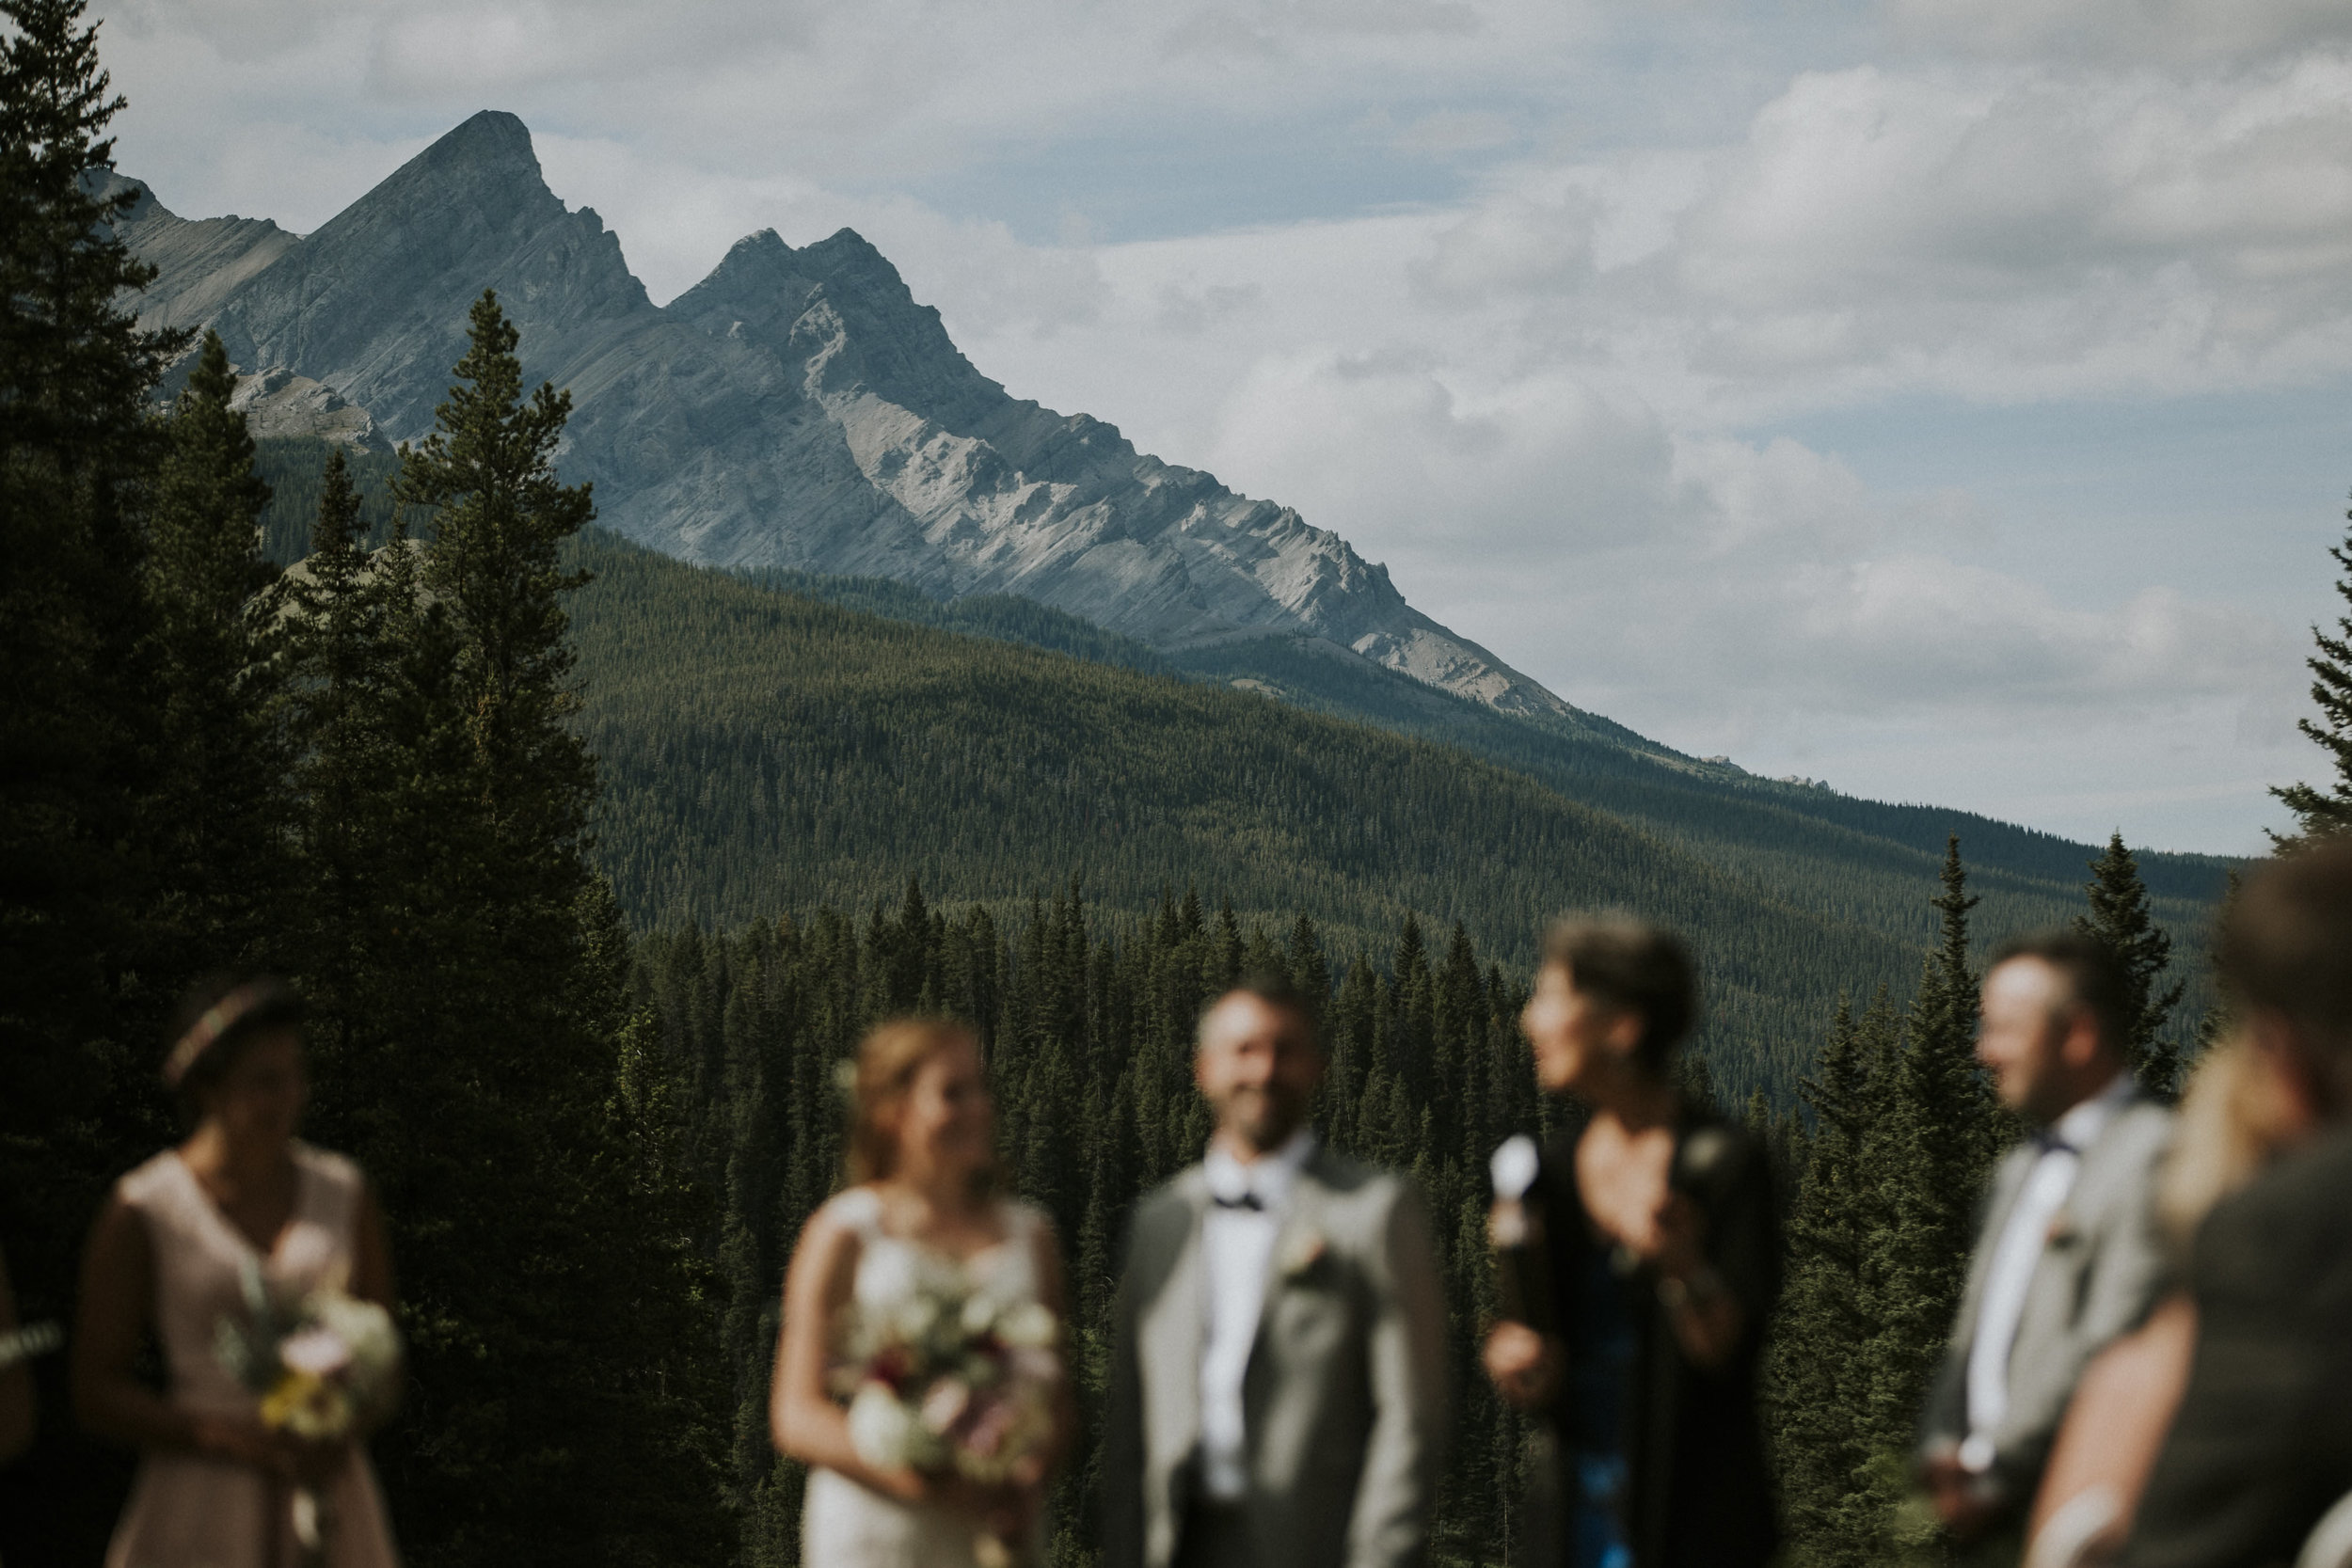 couple stands against mountains in the distance mt norquay banff